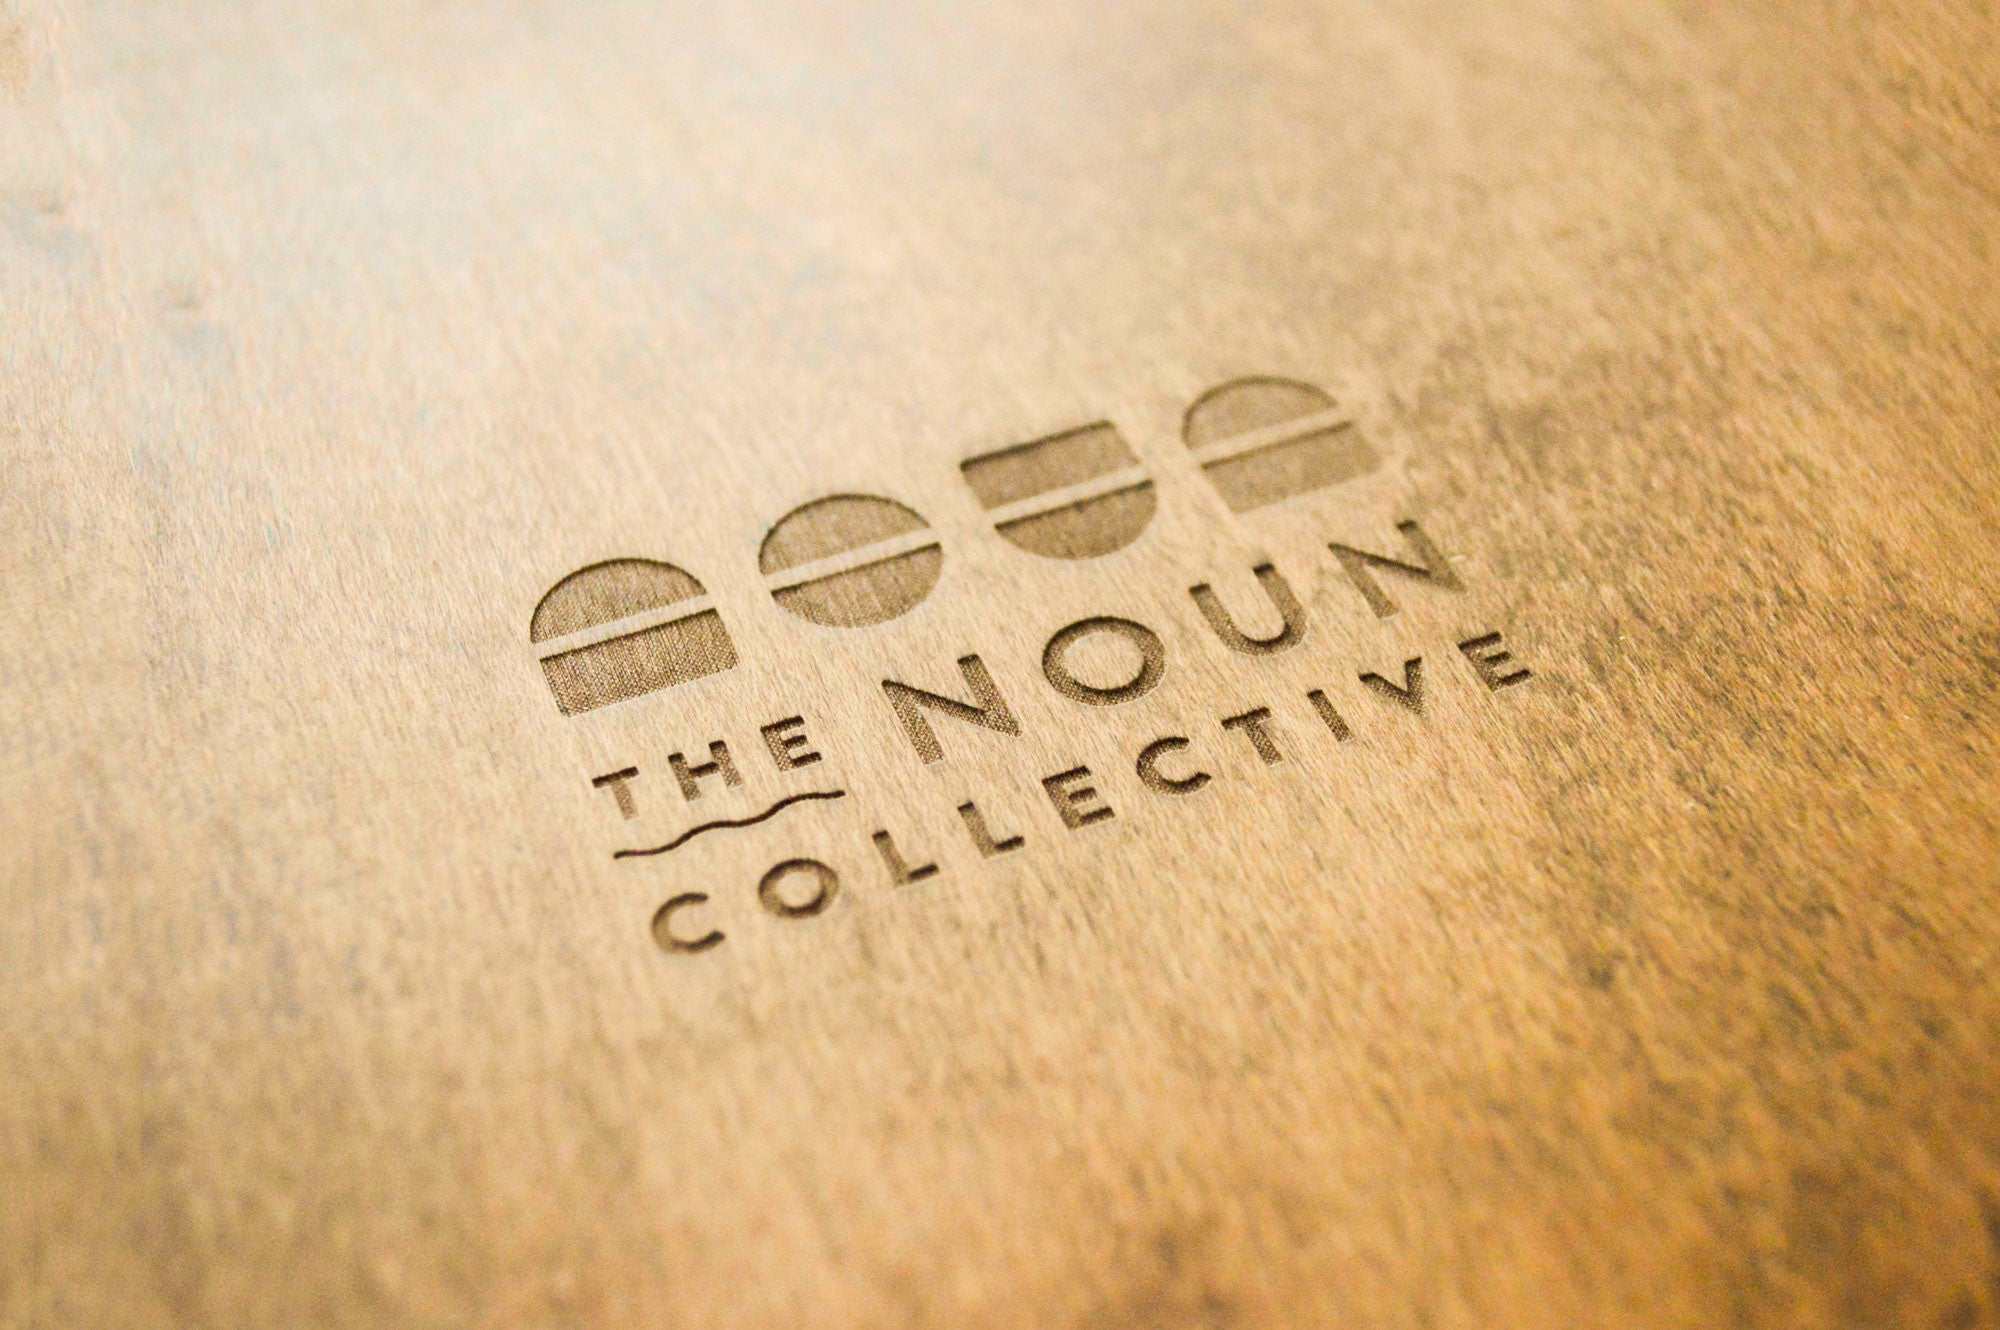 The Noun Collective